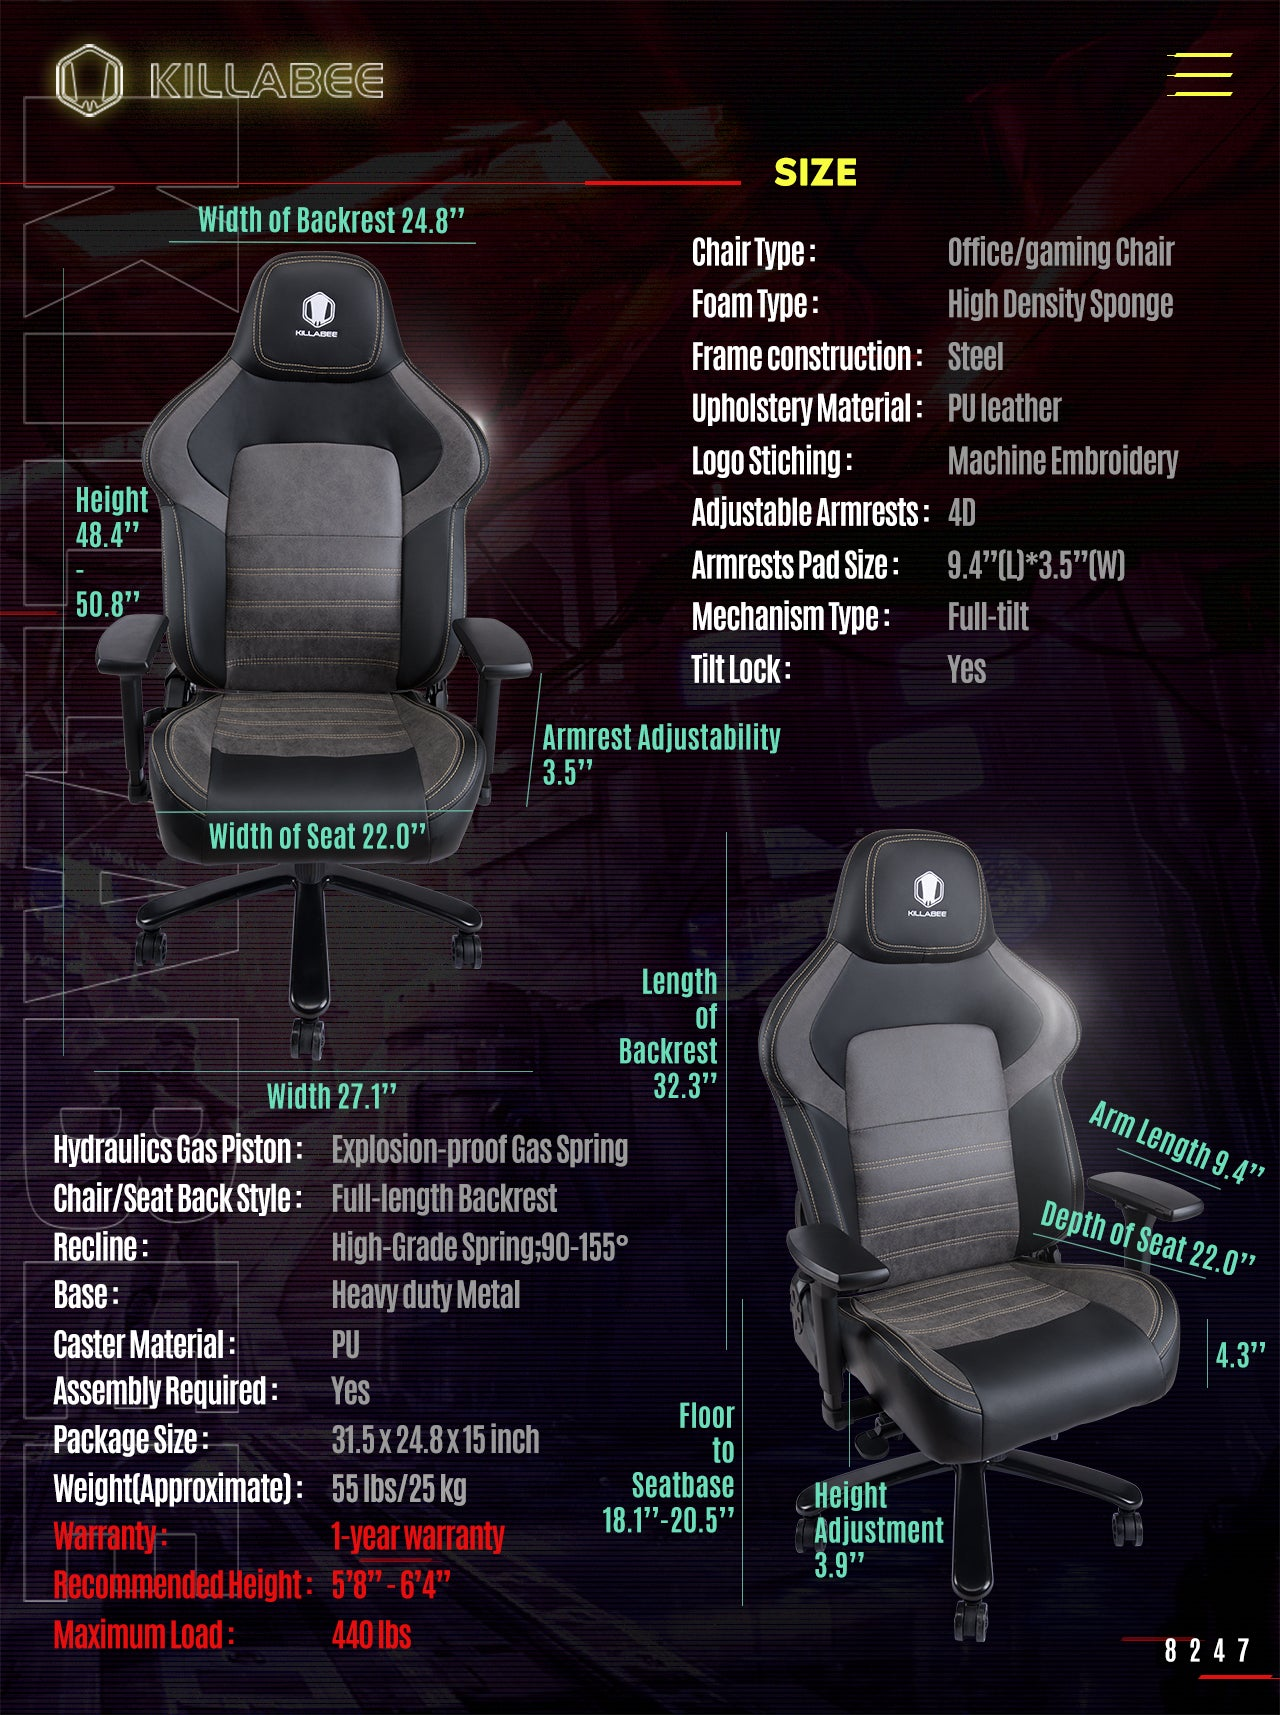 KILLABEE BIG AND TALL GAMING CHAIR 8247 SPECIFICATION